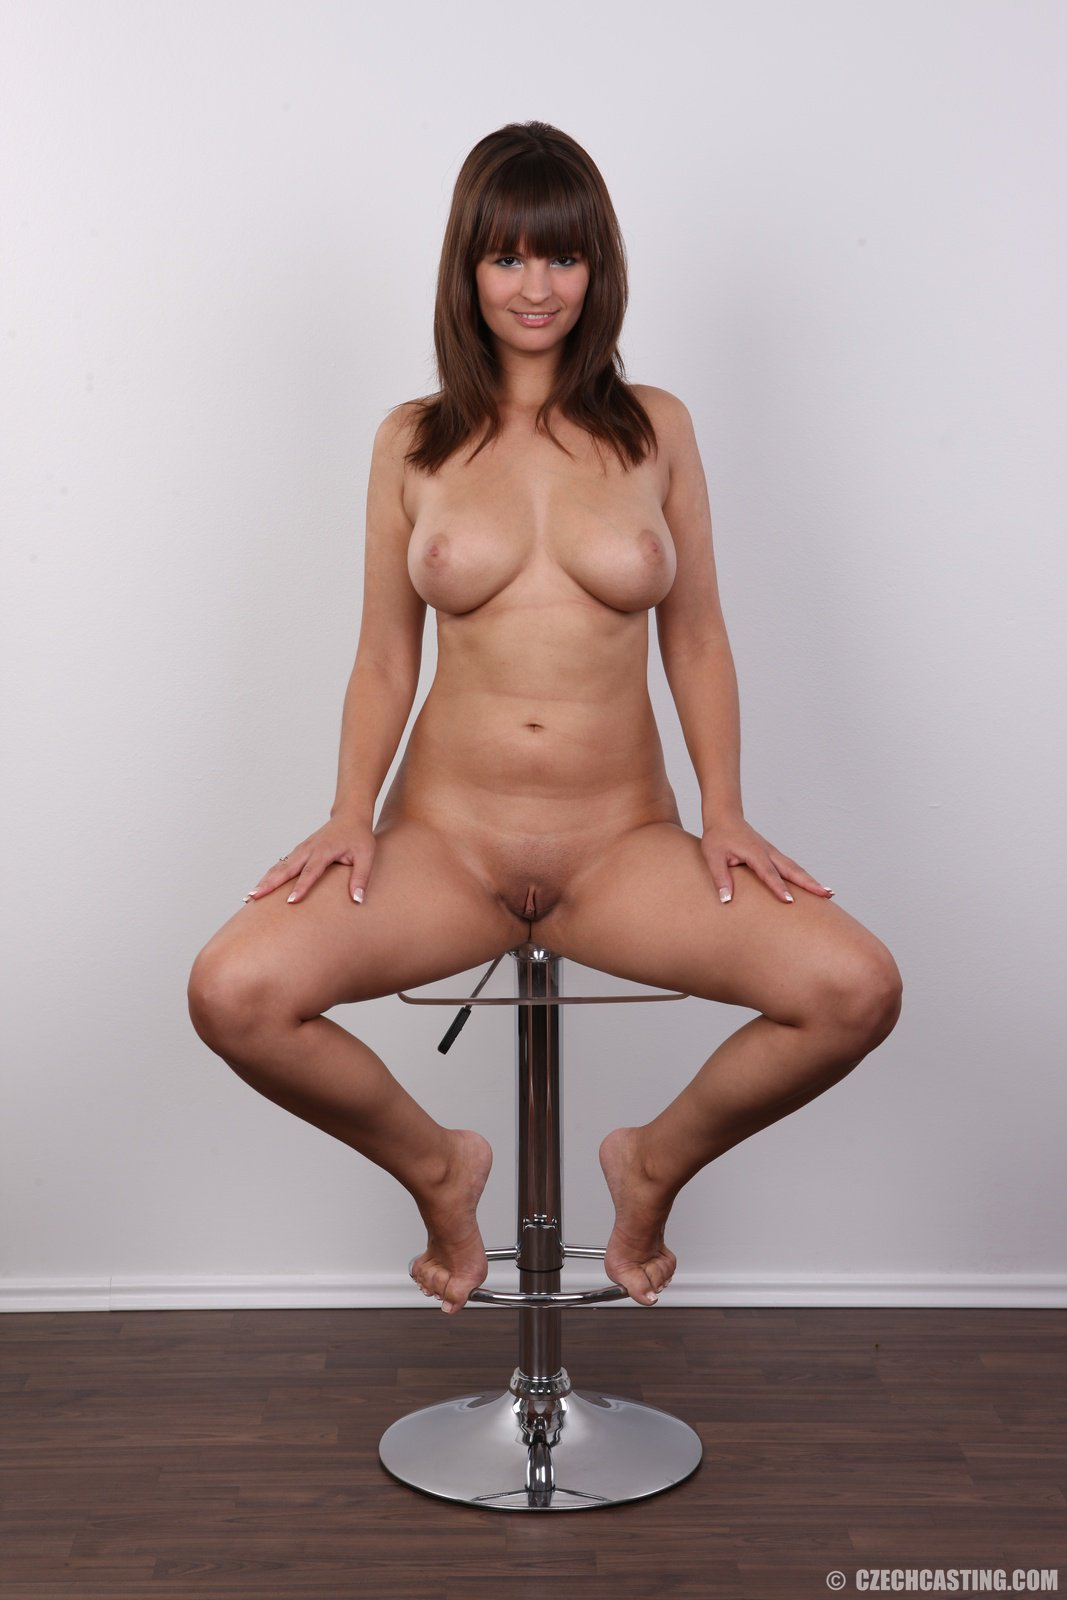 Dominno isabela from czech republic 8